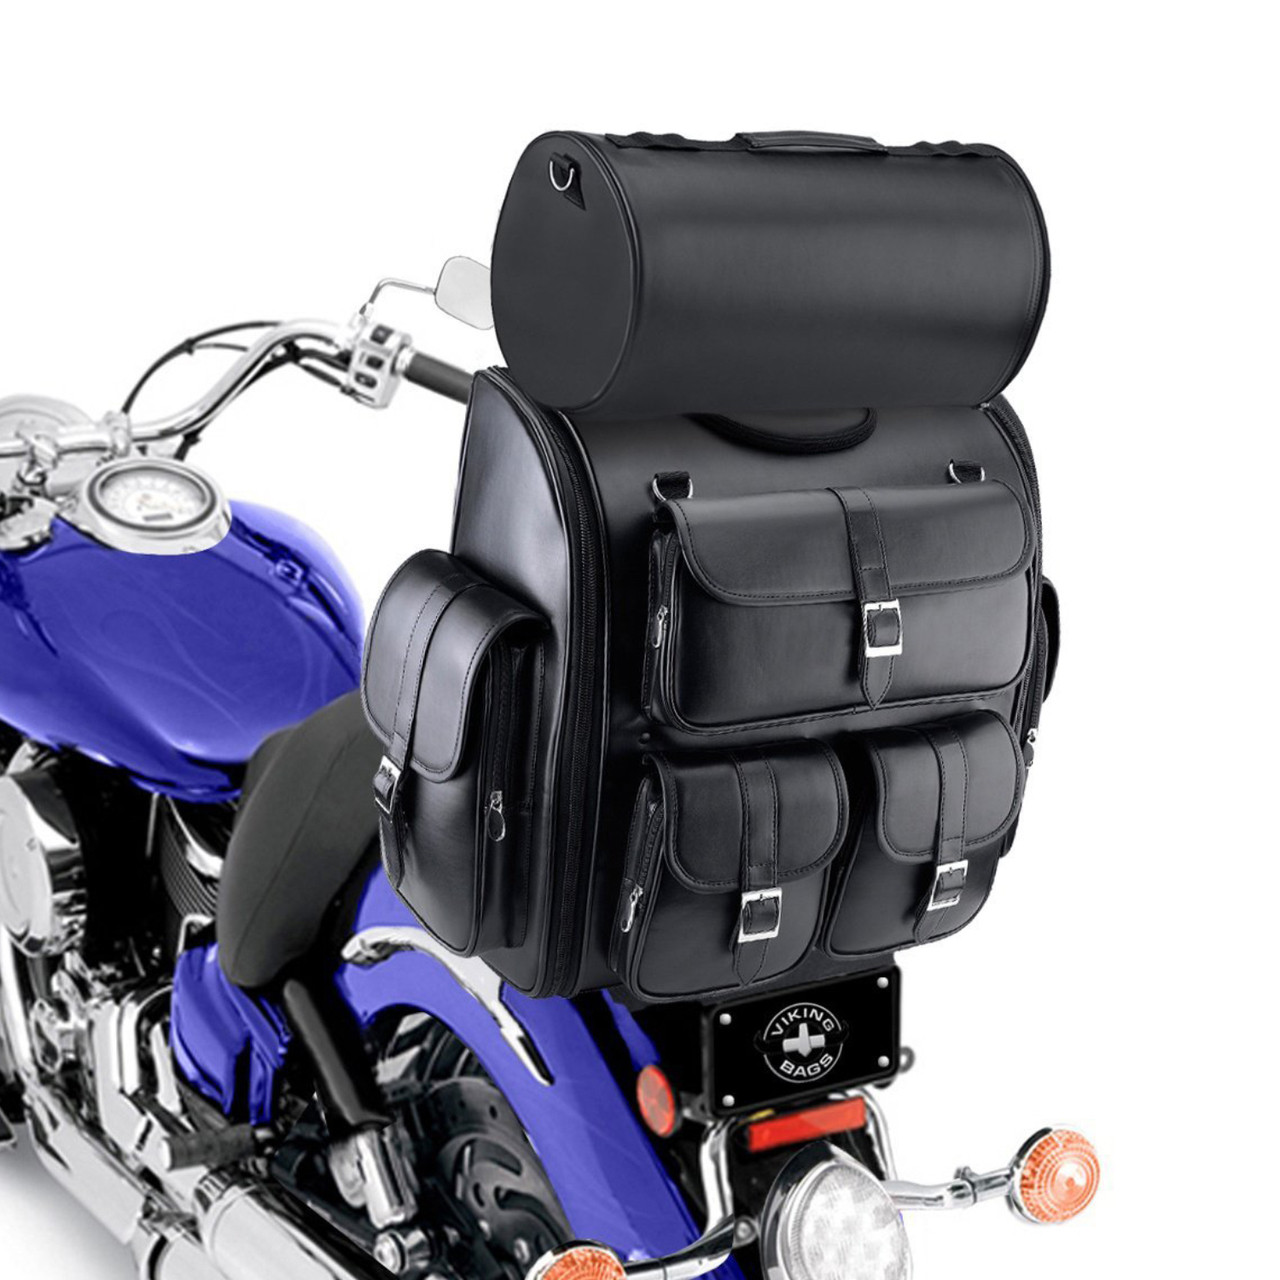 Viking Classic Motorcycle Tail Bag 3,100 cubic inches